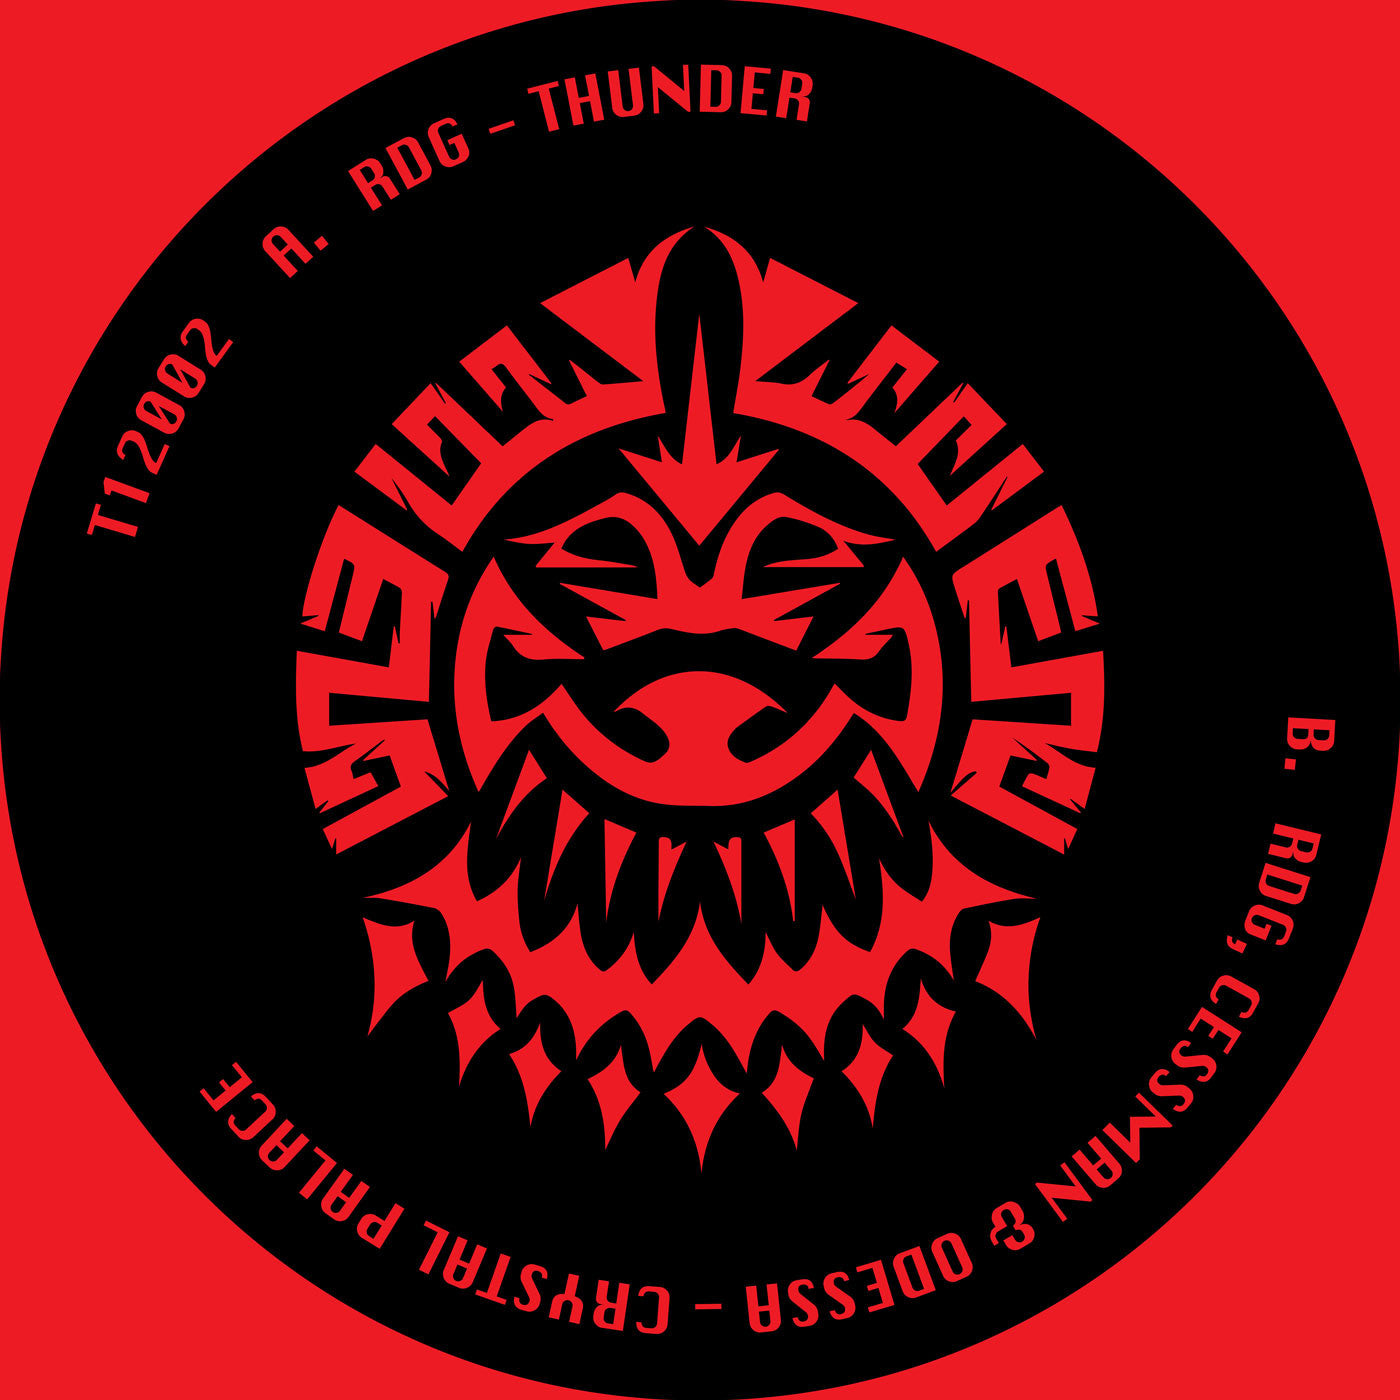 RDG, Cessman & O-Dessa - Thunder / Crystal Palace - Unearthed Sounds